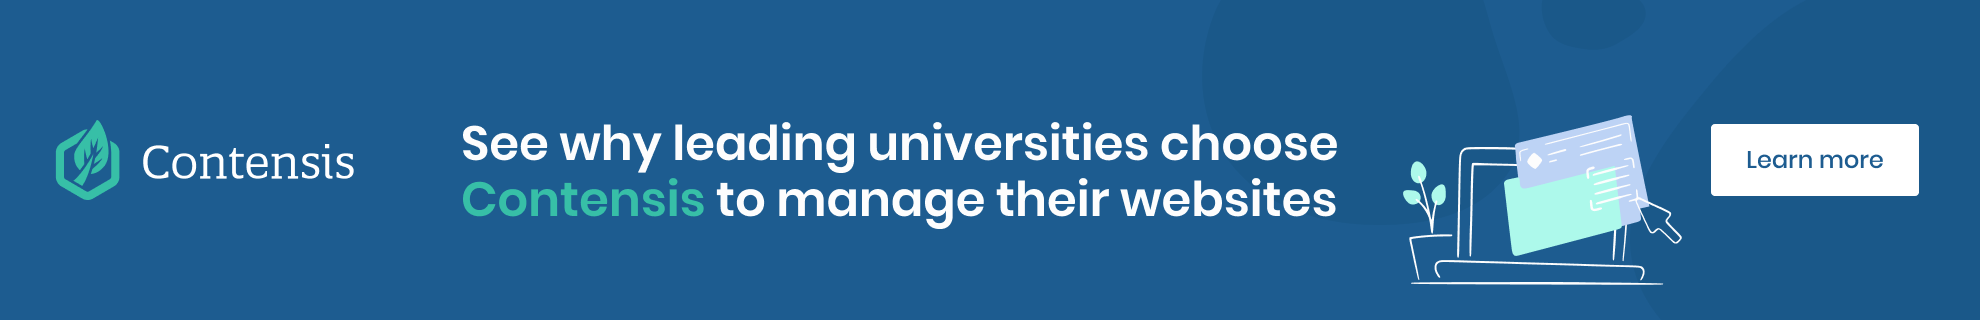 Contensis - See why leading universities choose Contensis to manage their websites. Learn More.